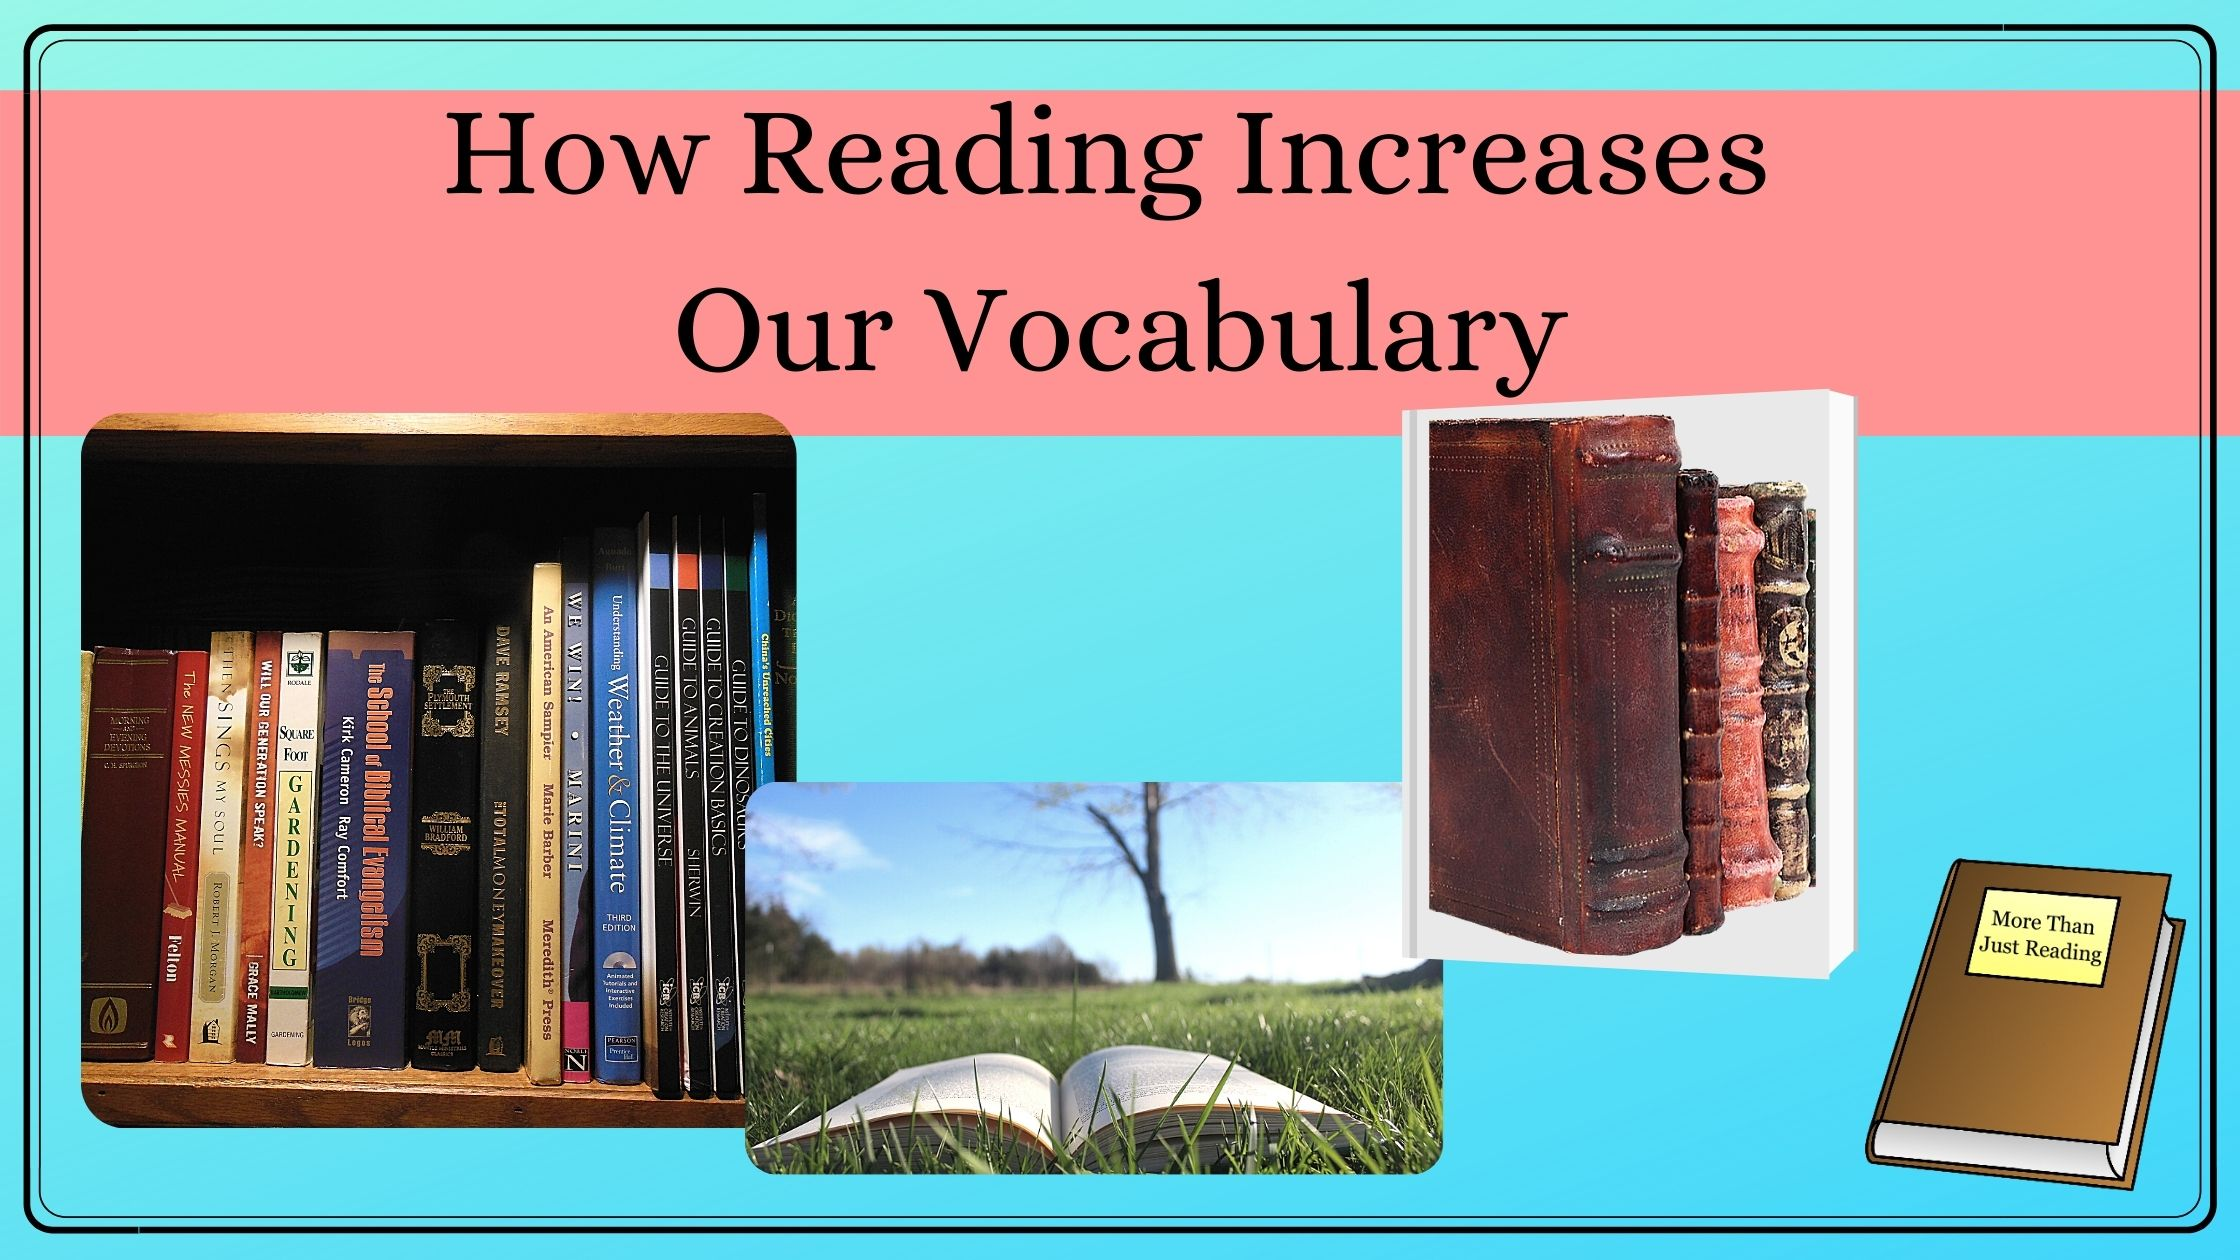 How Reading Increases Our Vocabulary